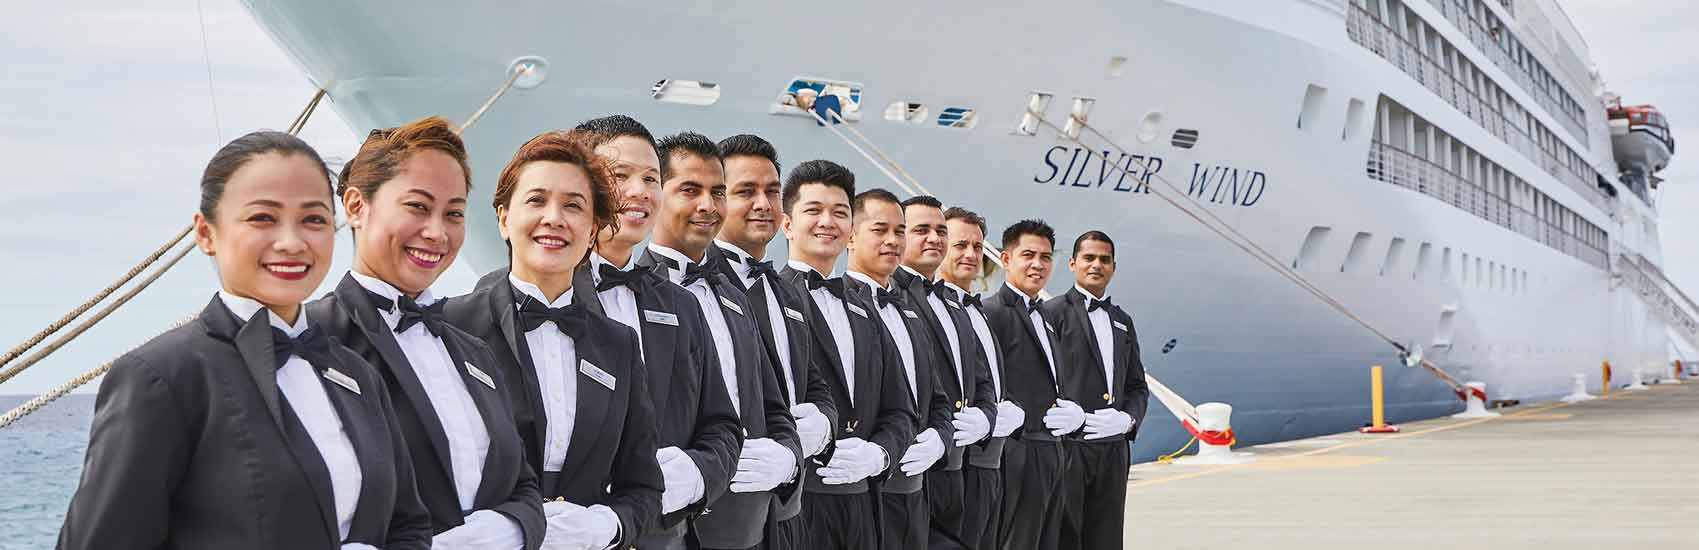 Offre Virtuoso exclusive de Silversea Cruises 3